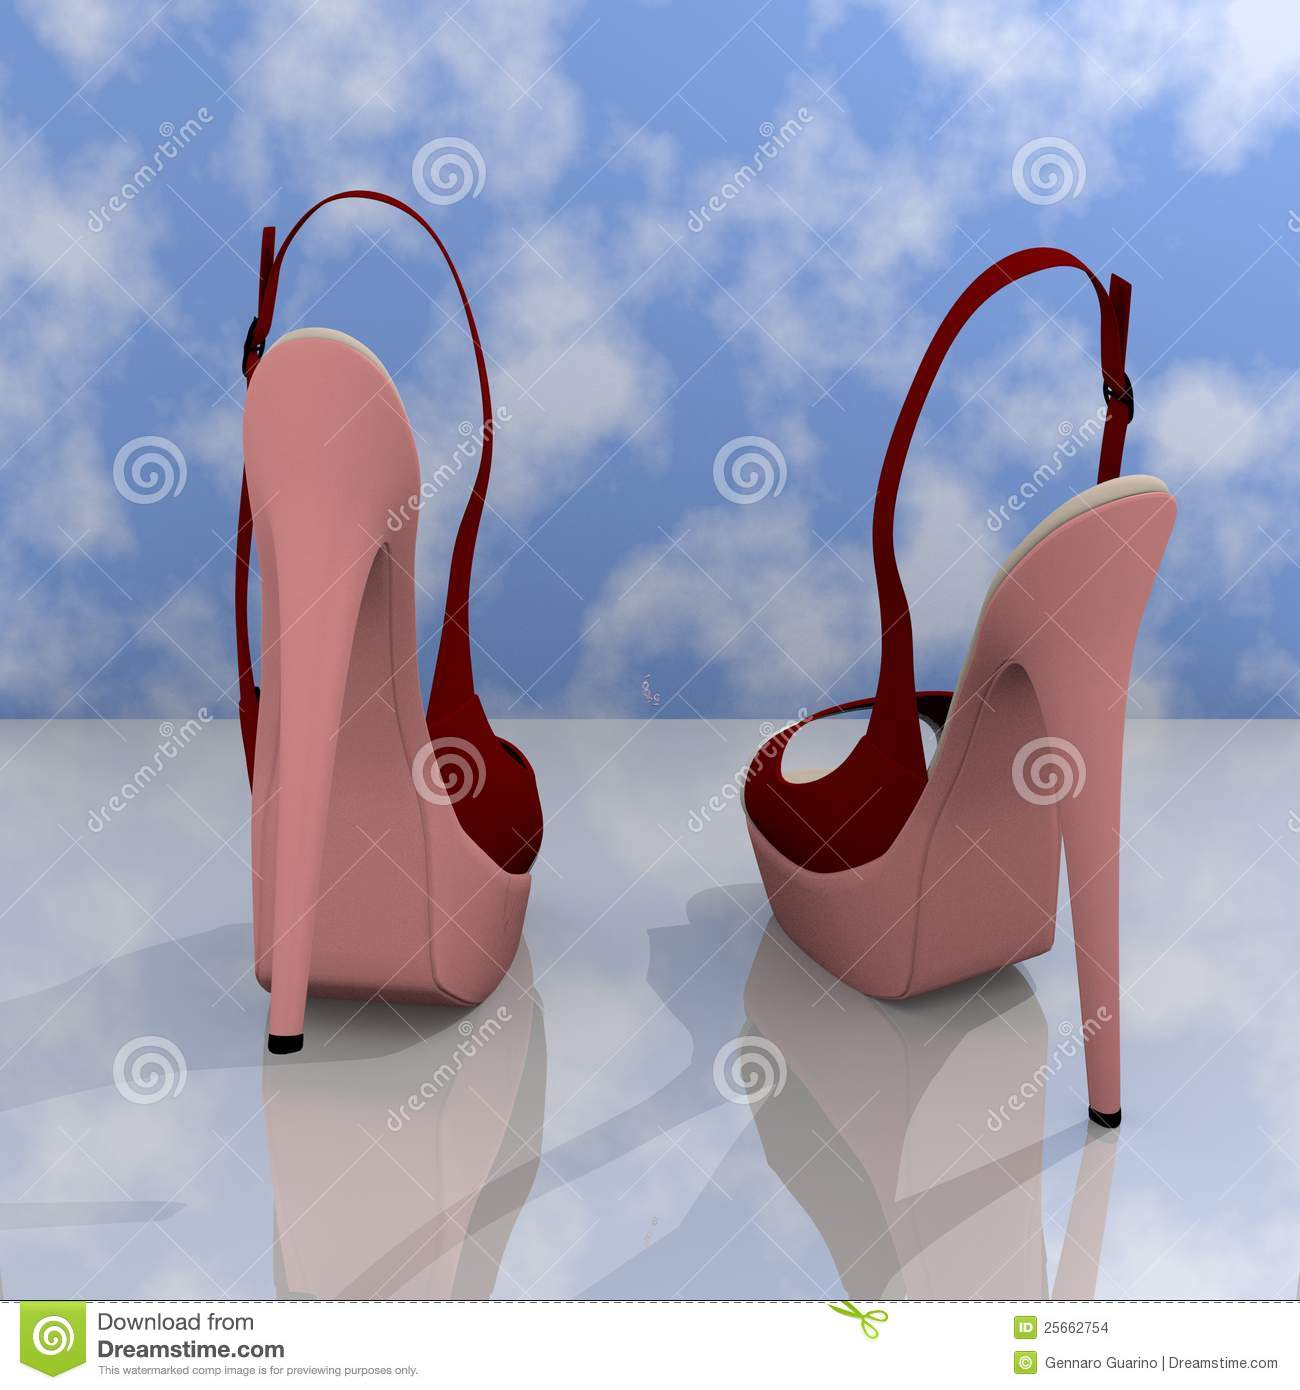 Stock Images: High heels shoes